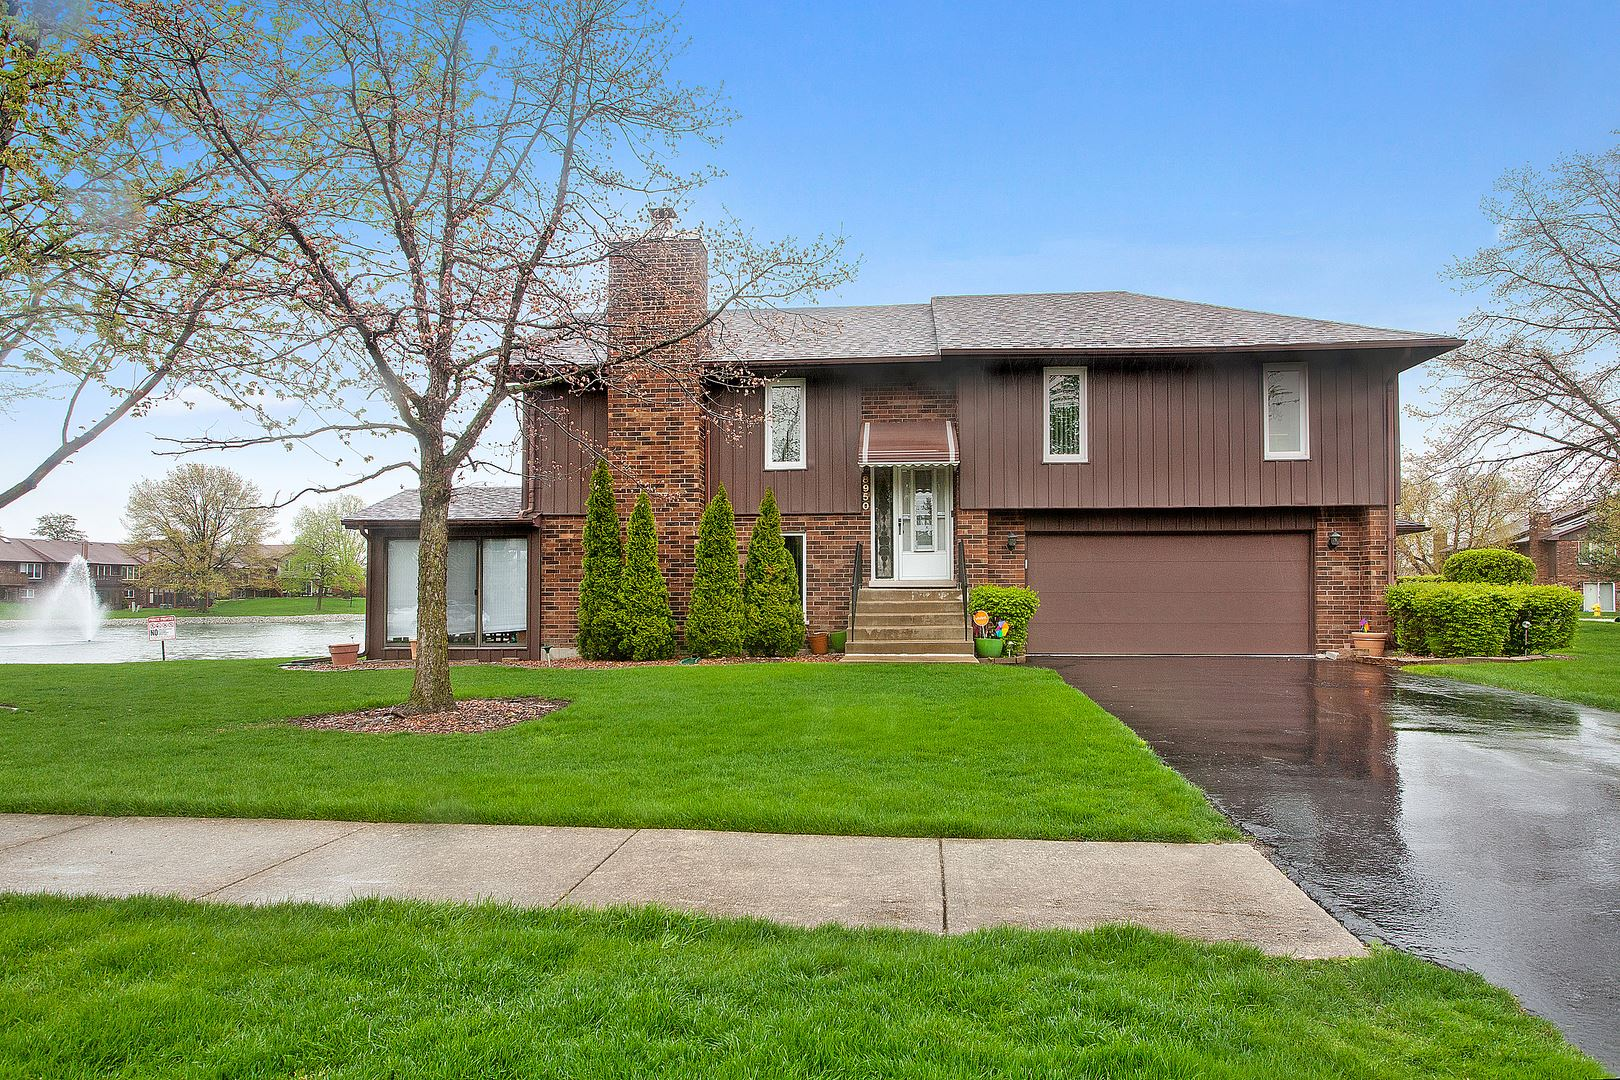 8950 Clearview Drive, Orland Park, IL 60462 - #: 10709453